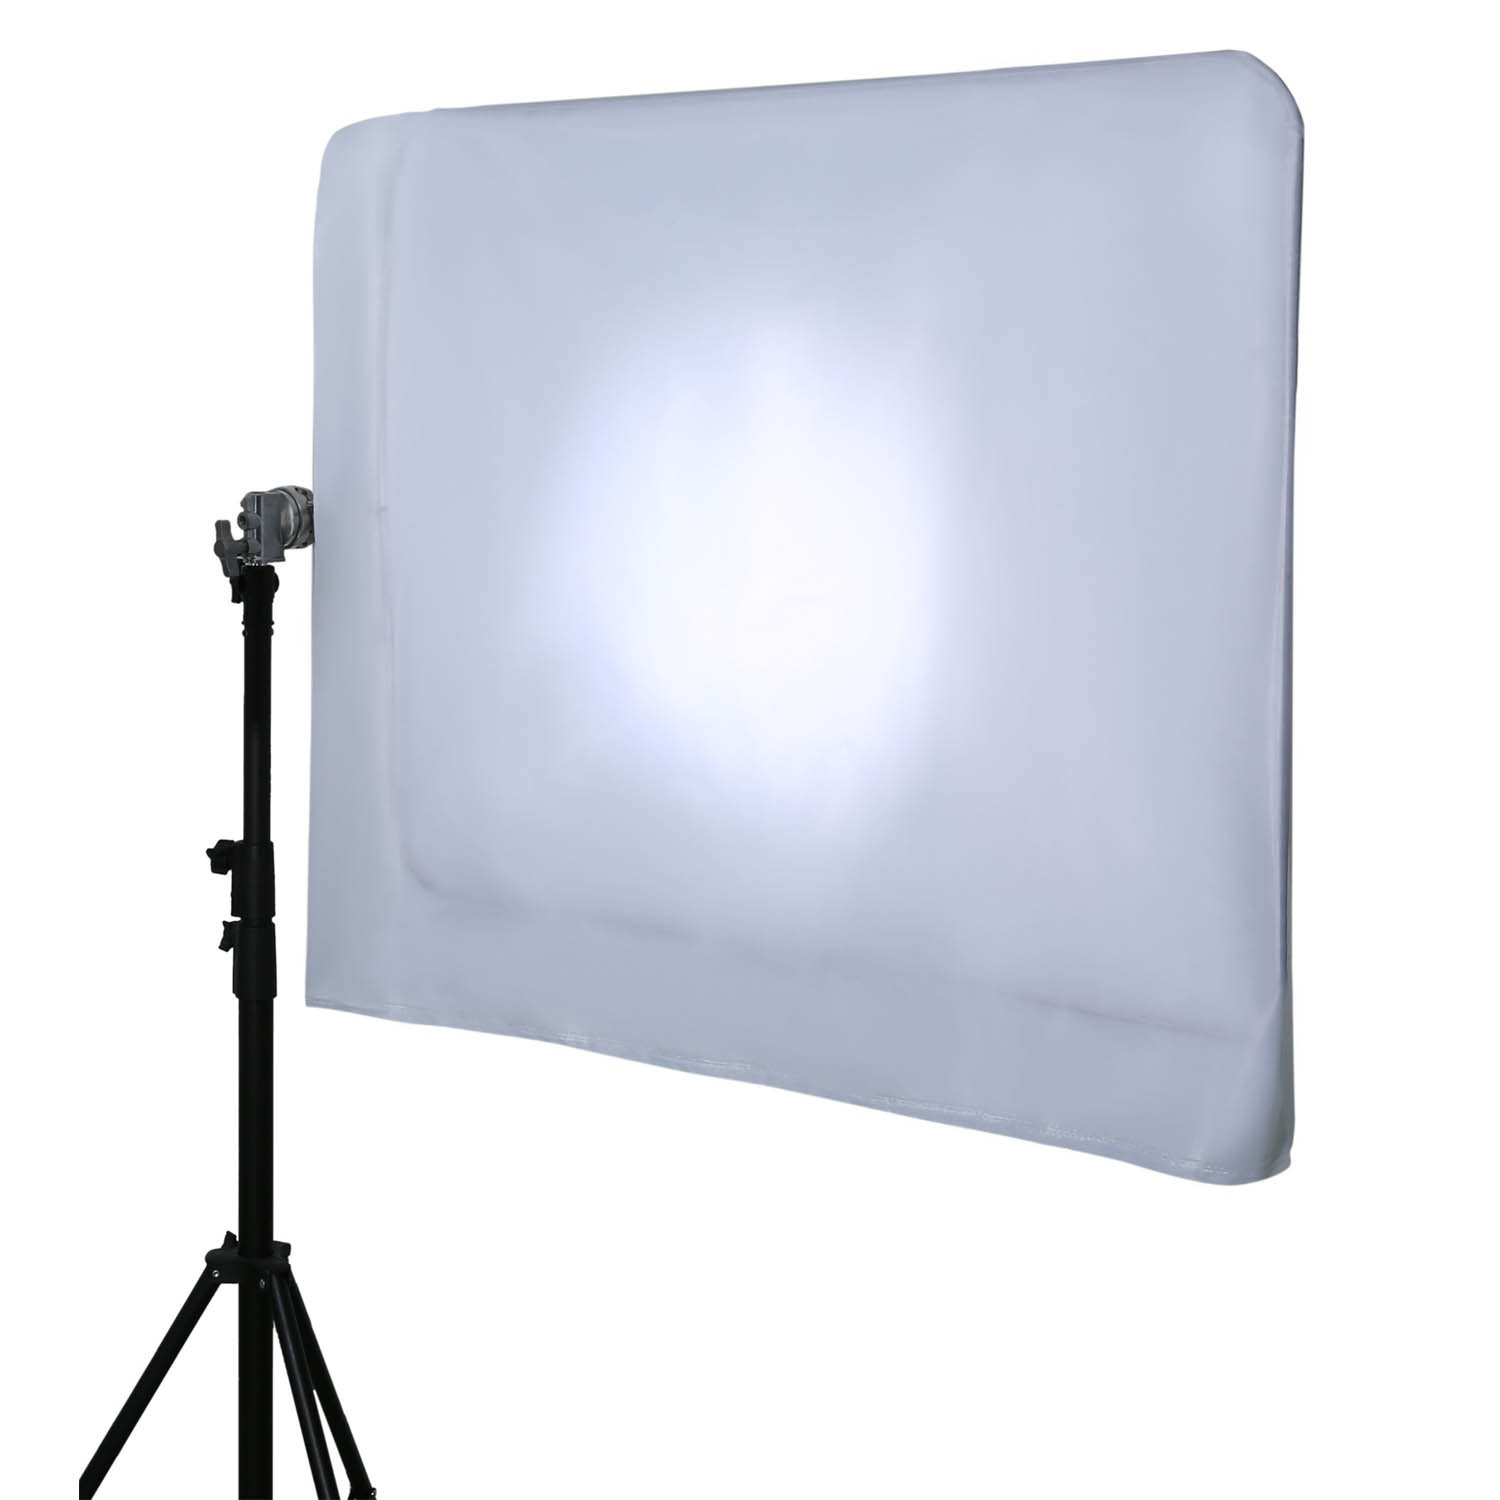 G-raphy Nylon Silk White Seamless Diffusion Fabric for Photography Softbox,Light Tent and Lighting Light Modifier